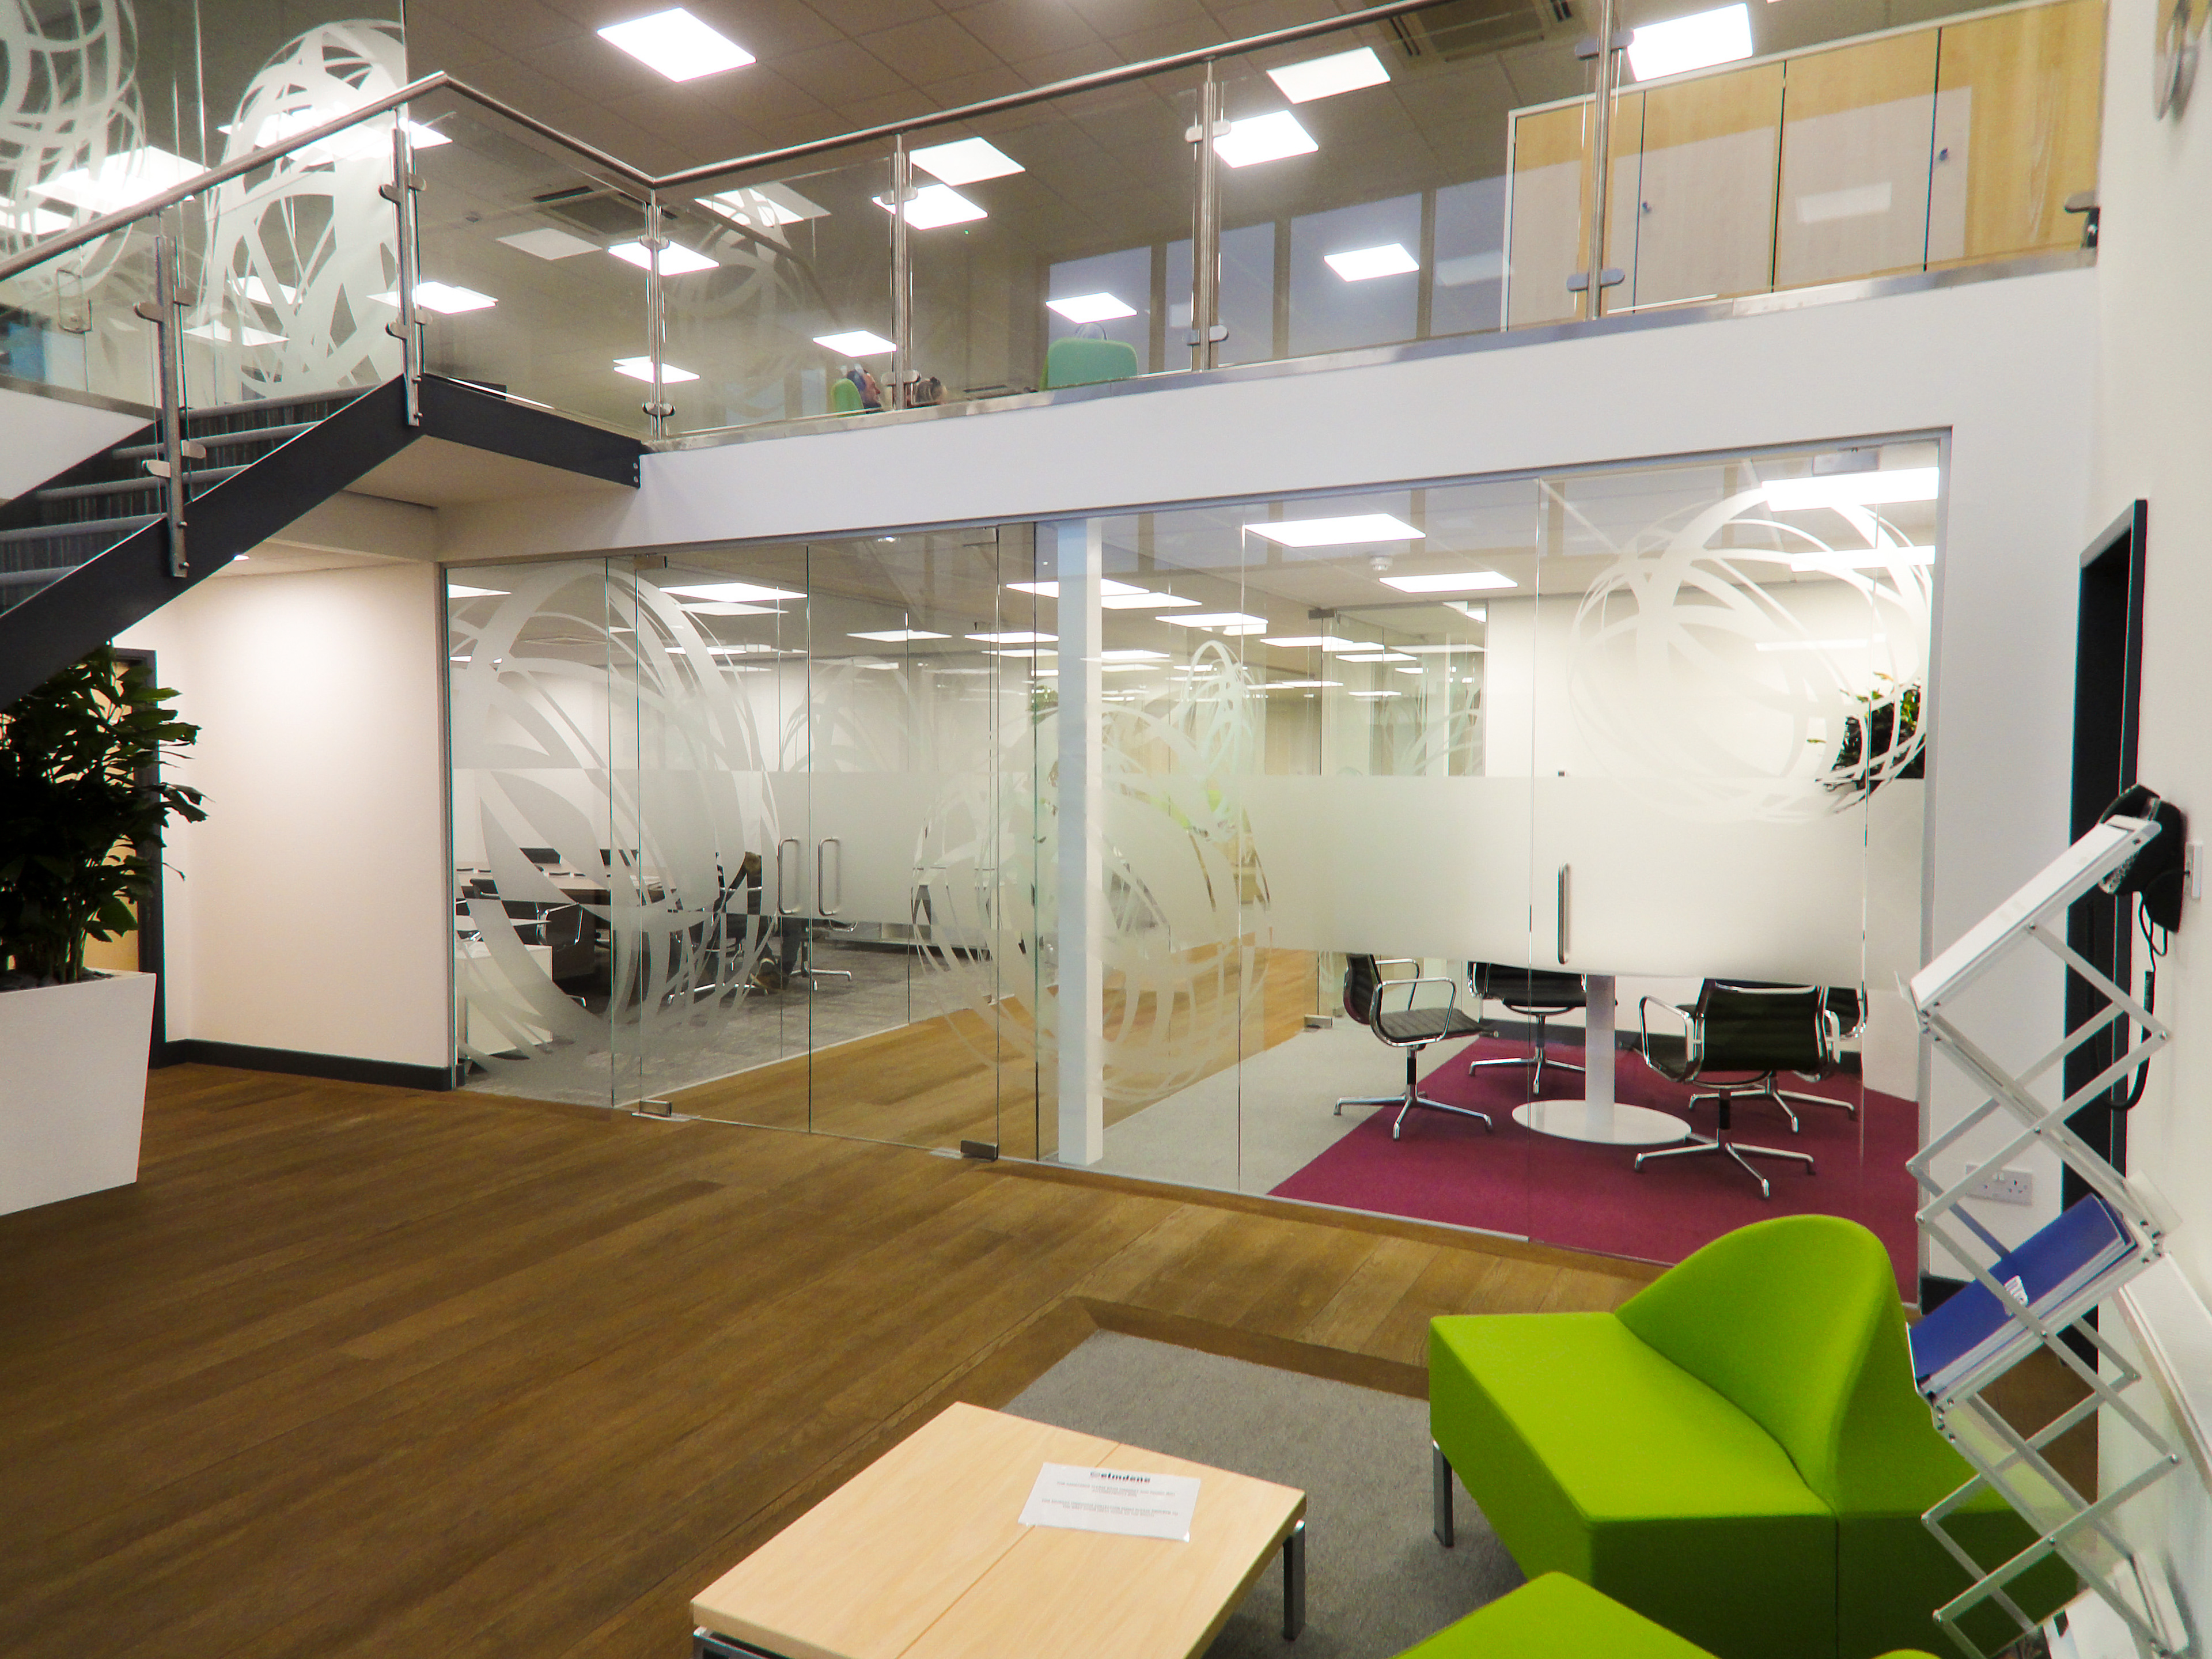 mezzanine office space. Refurbish And Fit-out Of Existing Warehouse To Accommodate New Mezzanine Floor With Ample Office Space For Growing Company.